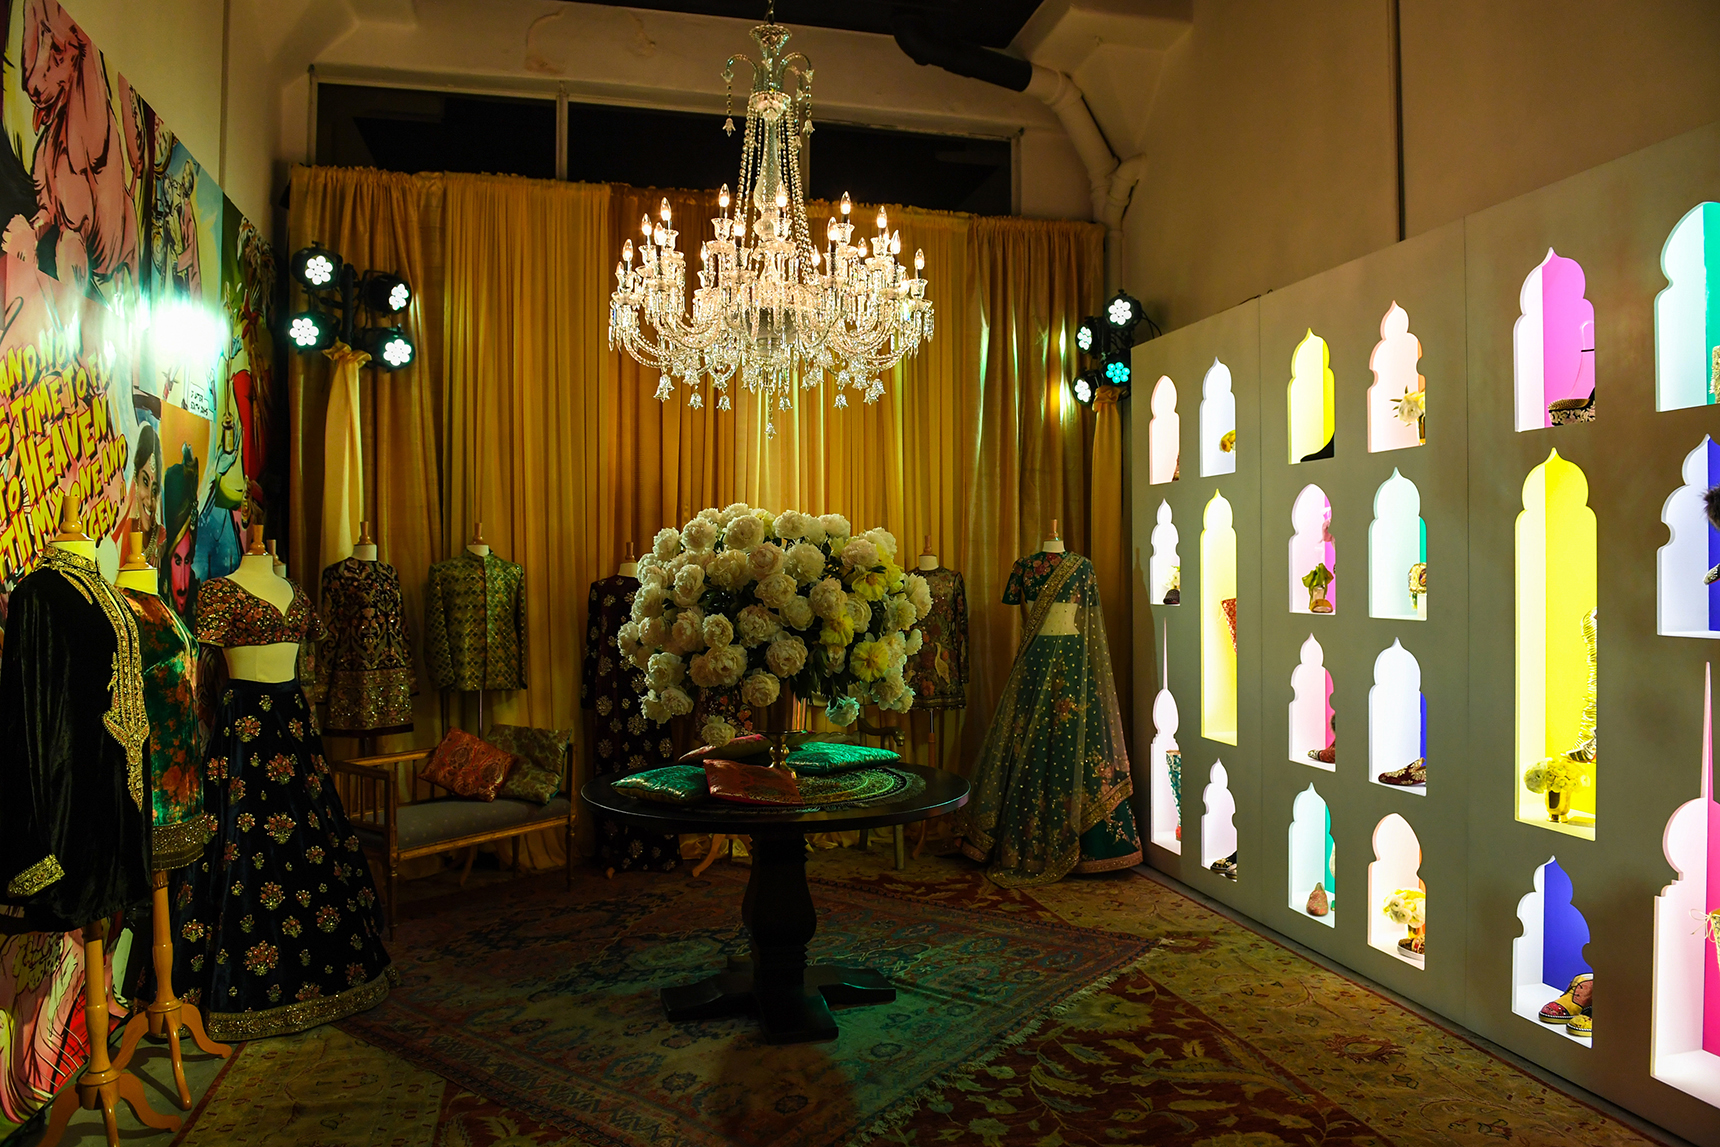 Just One Eye Presents : Christian Louboutin x Sabyasachi Capsule Collection